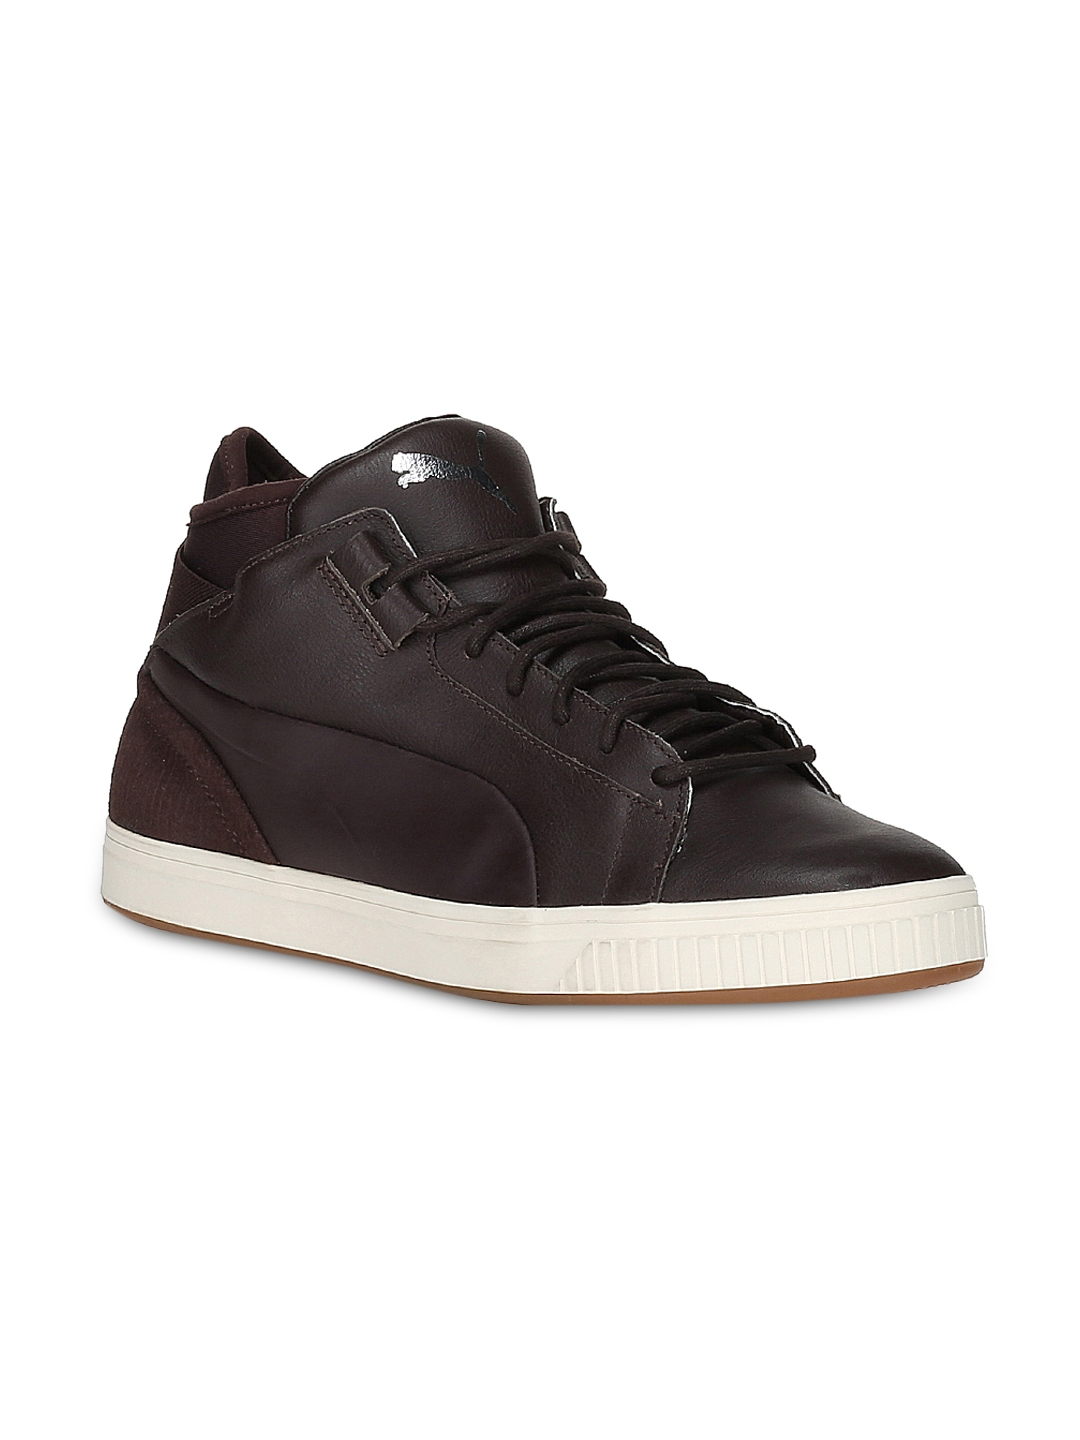 12d6b6433fb6 Buy Puma Men Coffee Brown Leather Play CITI Sneakers - Casual Shoes ...